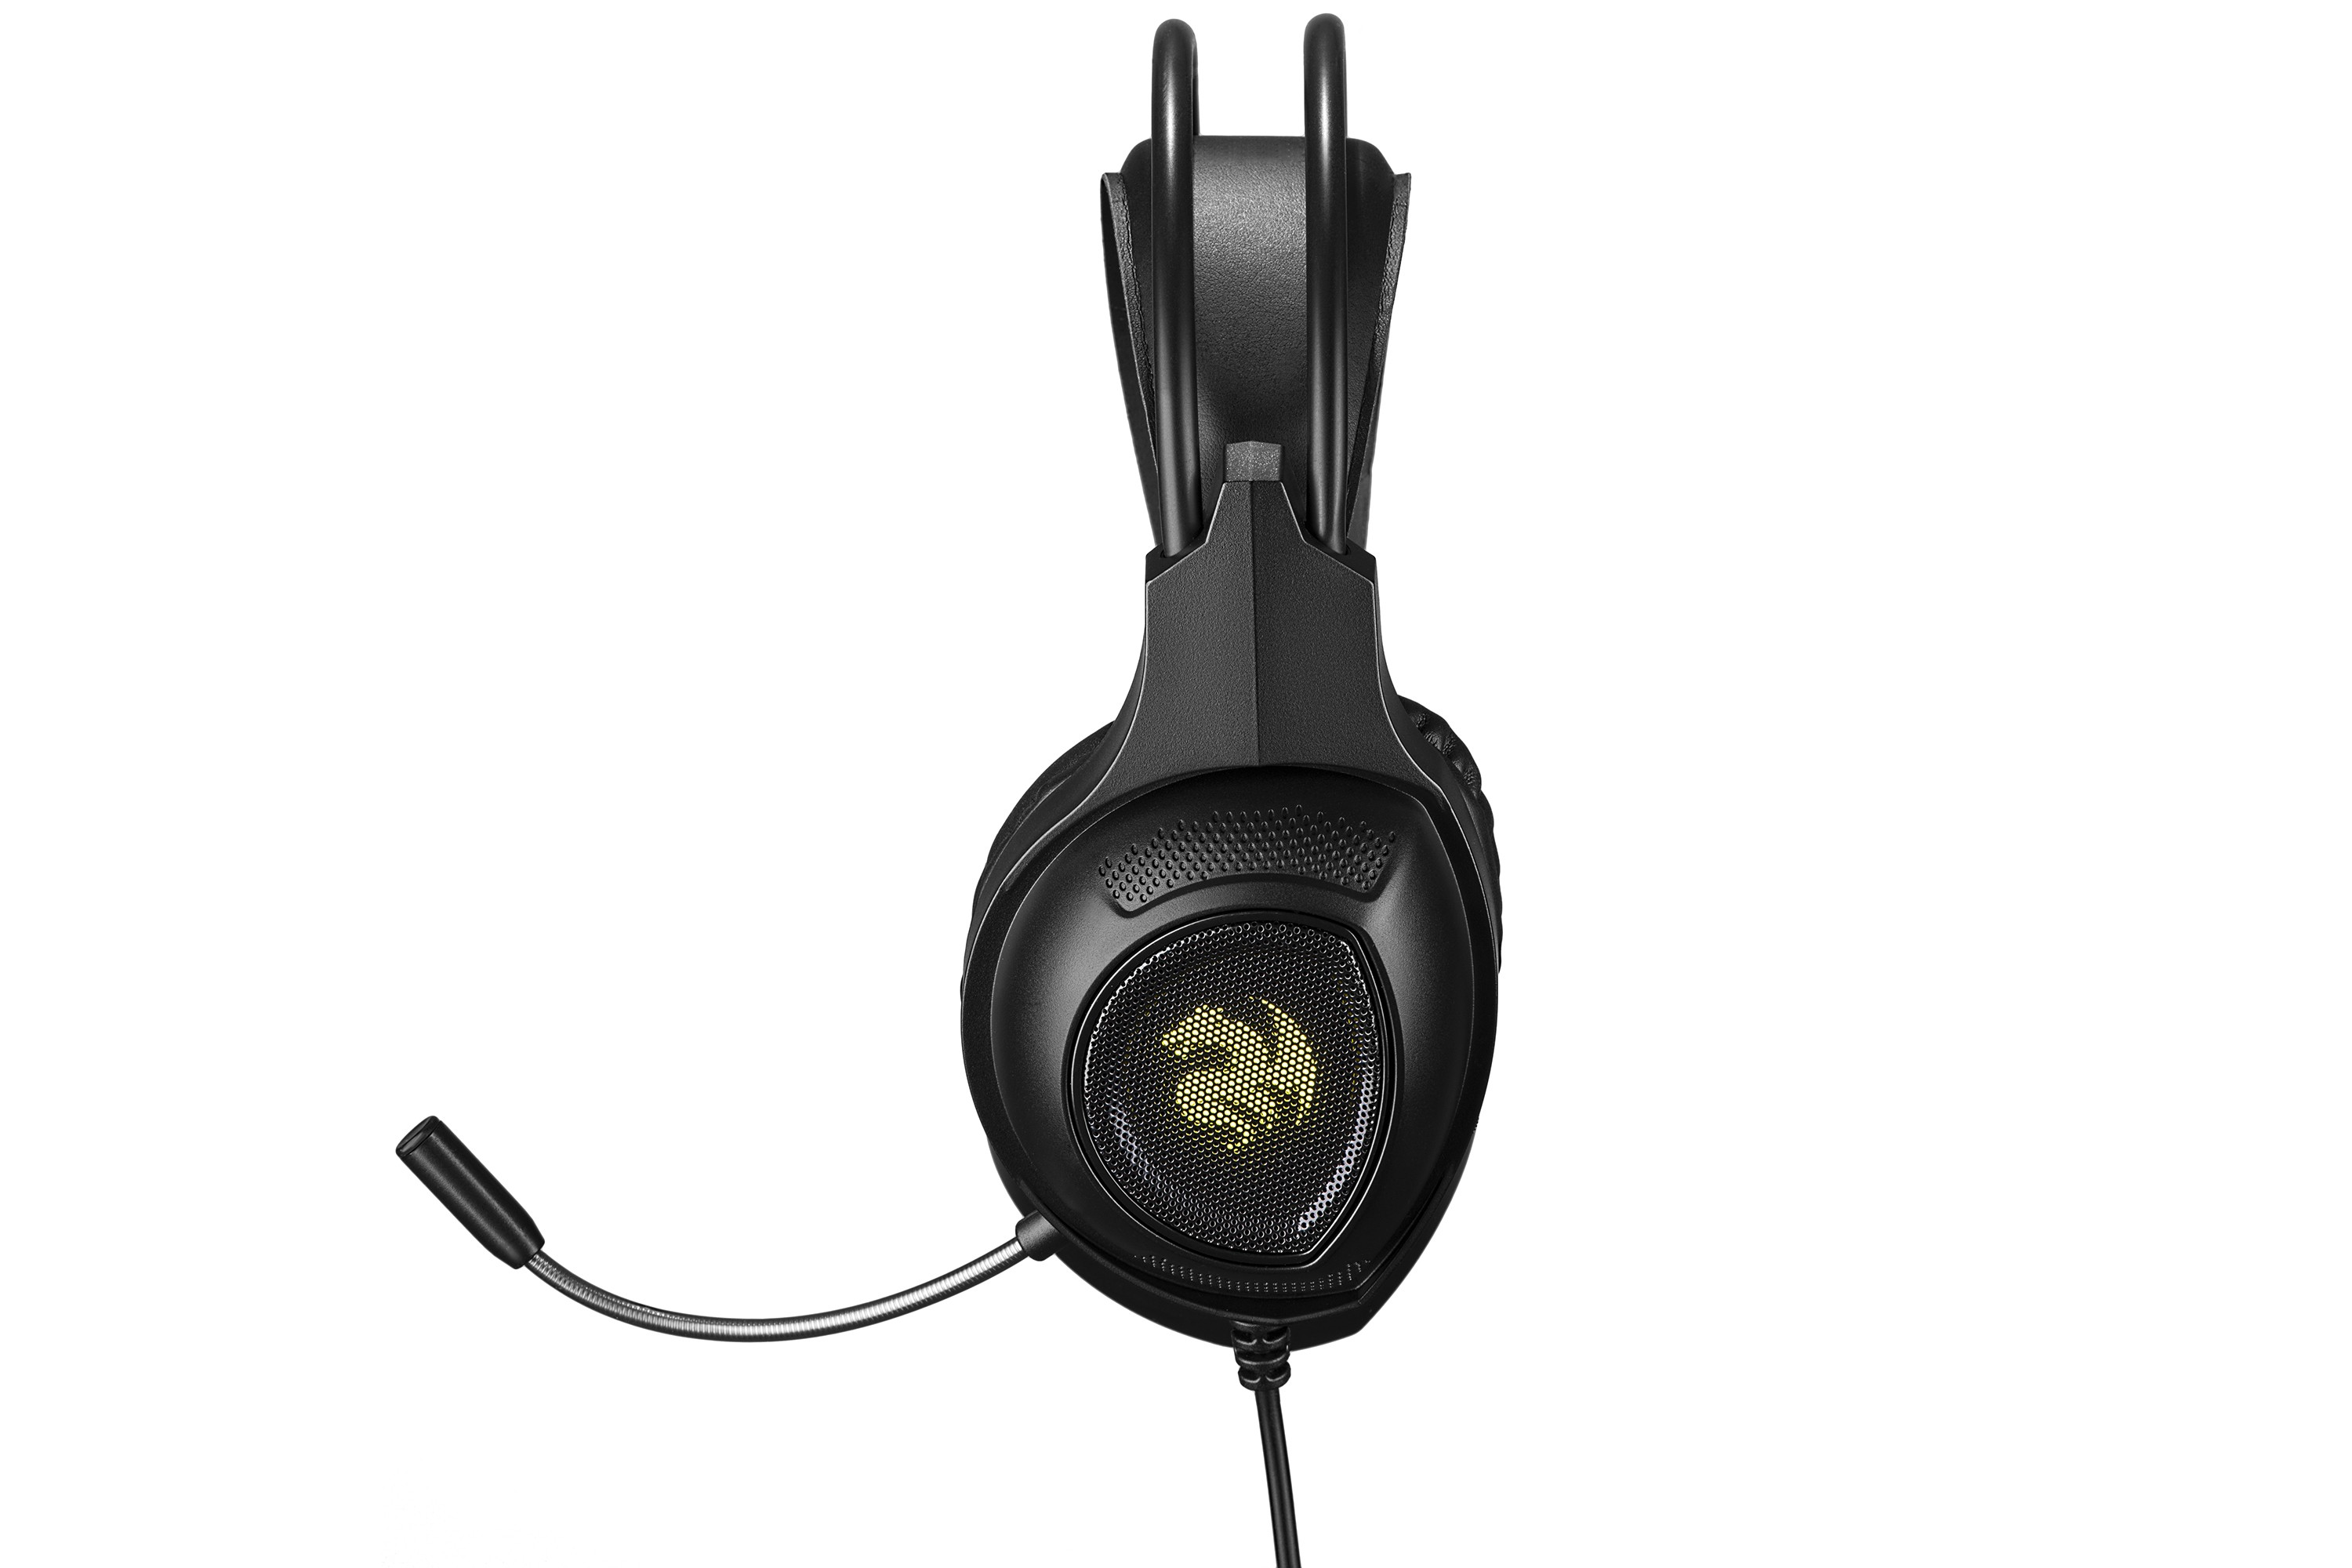 GAMING HEADSET 2E GAMING HG310 BLACK 2E-HG310B